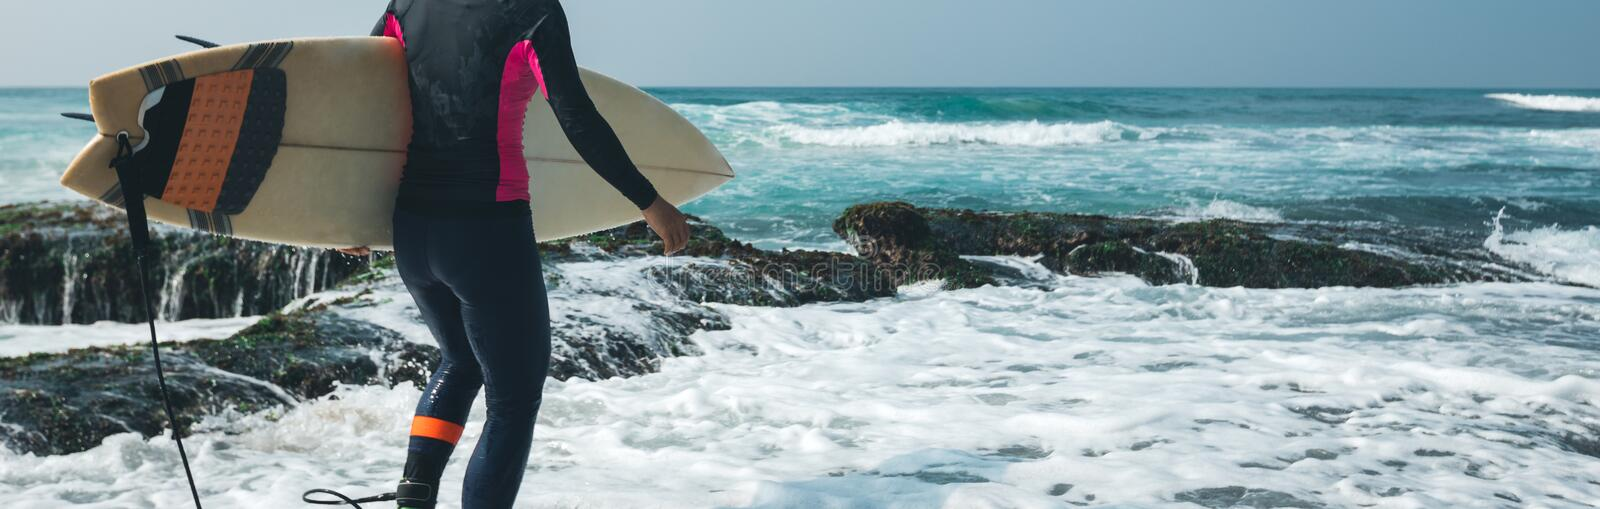 Woman surfer with surfboard royalty free stock images